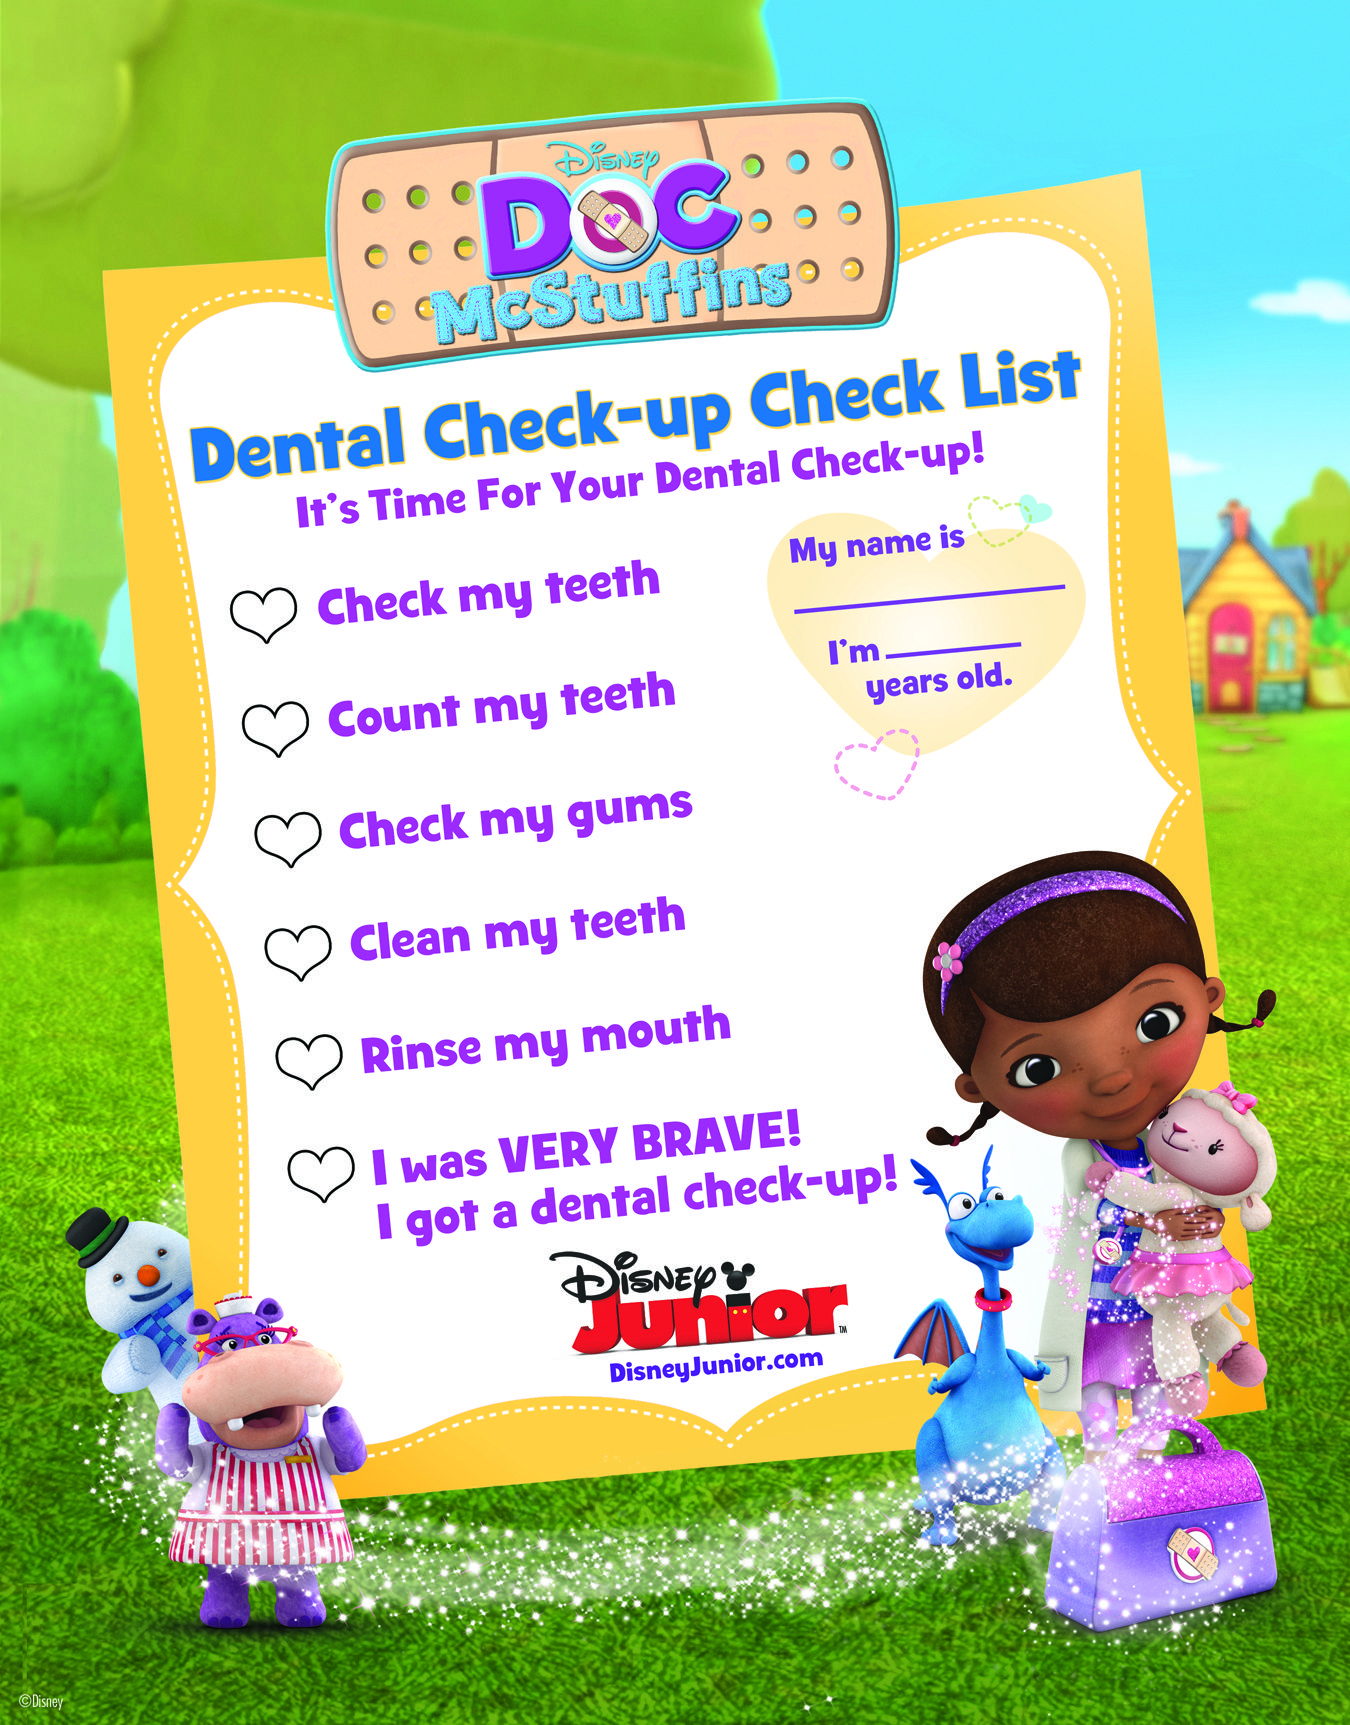 Help Your Little One Through Going To The Dentist With